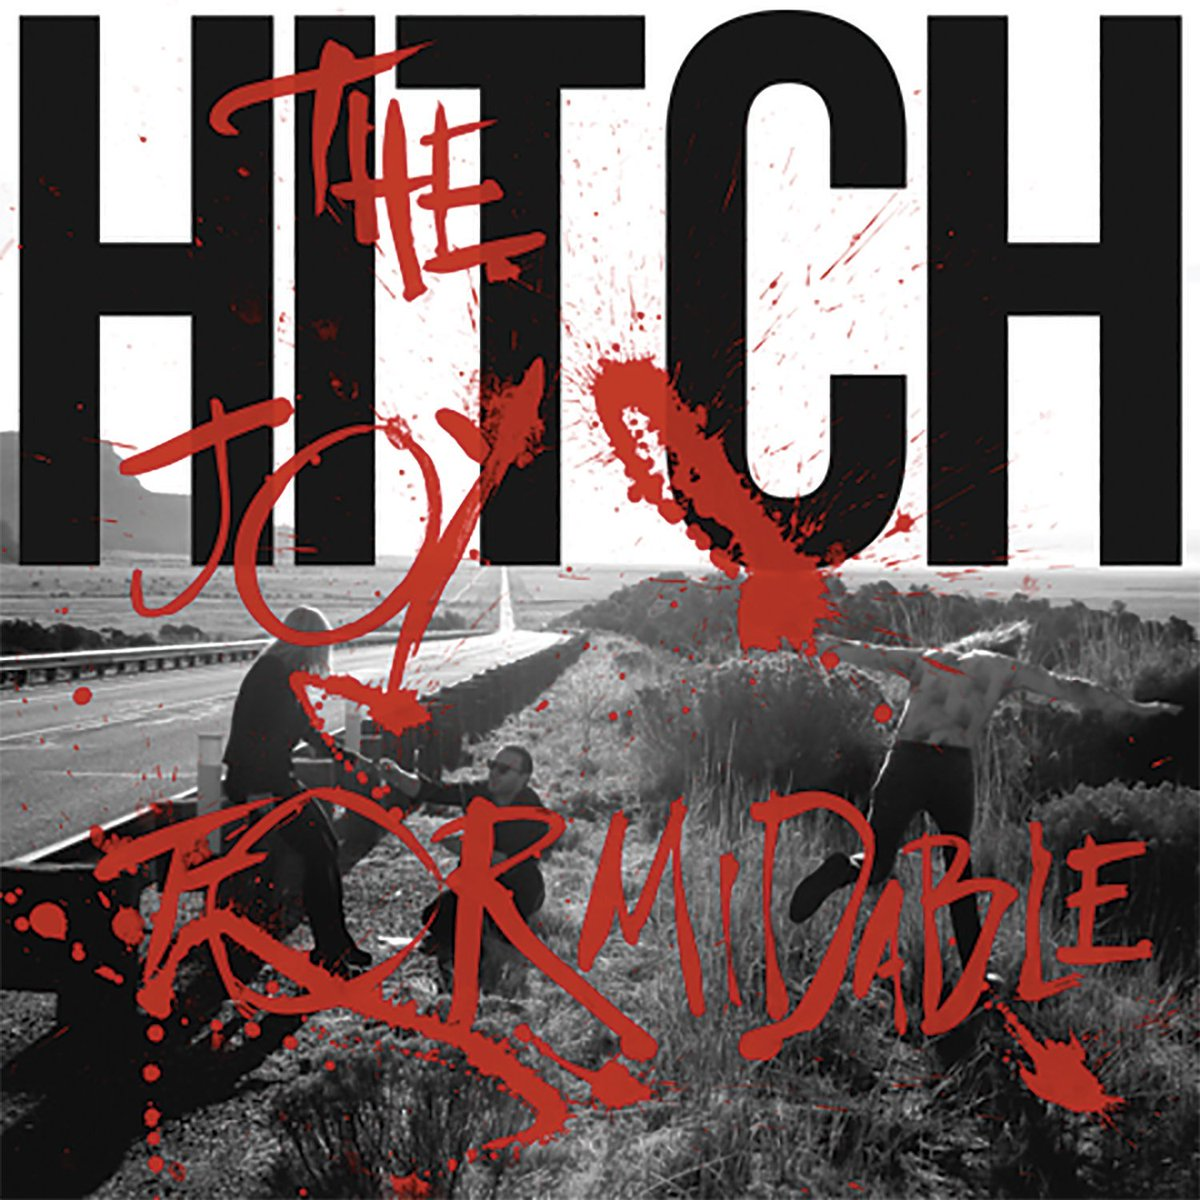 Our new album #Hitch is out now!!! Get it on @iTunes here: https://t.co/HaYY62BWb0 https://t.co/radRHhIXuU